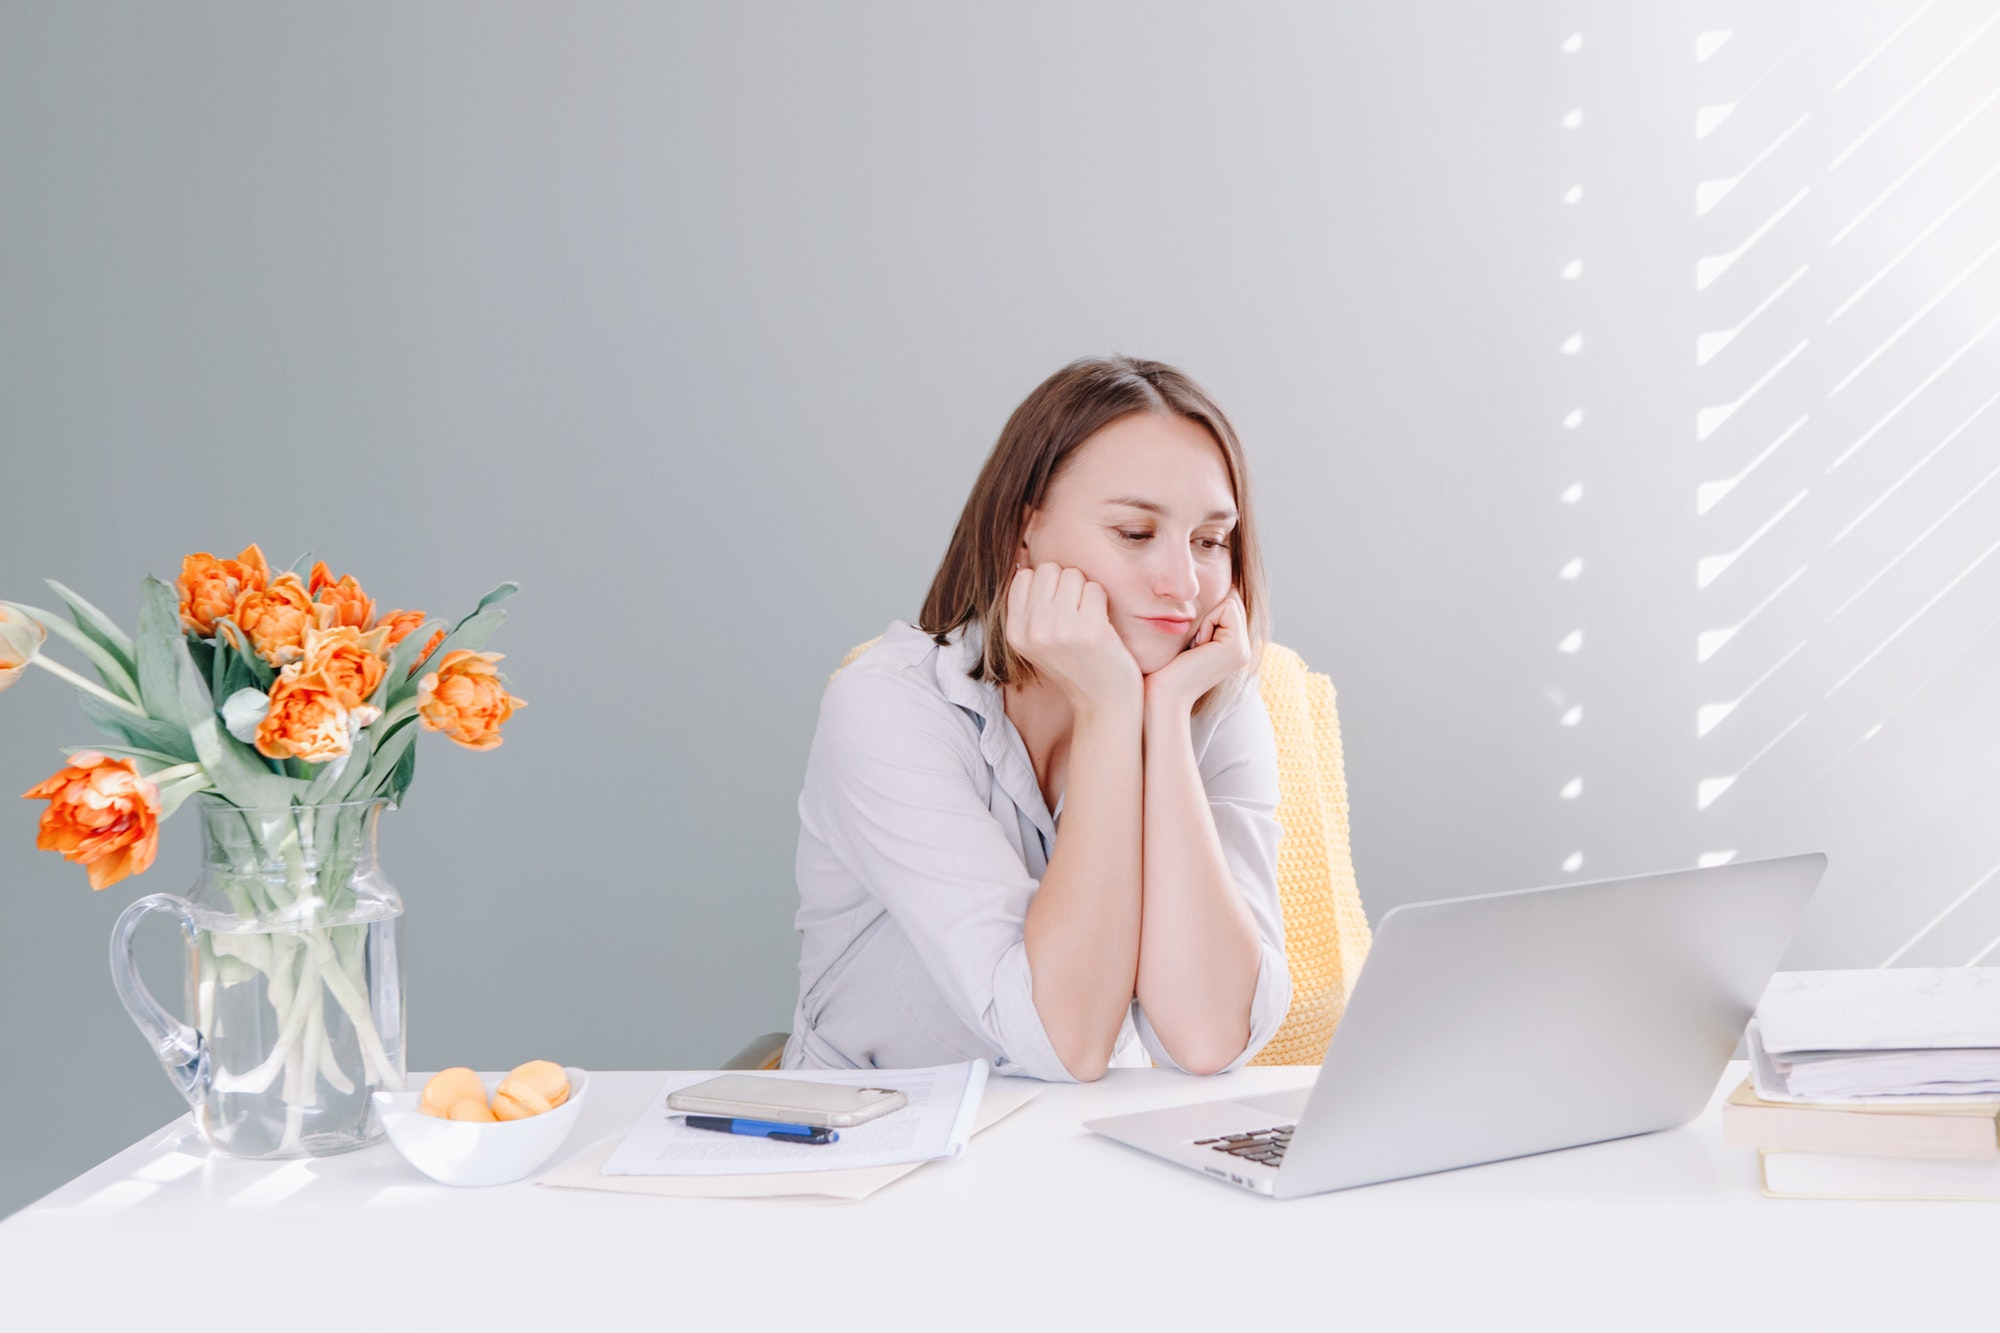 Puzzled overwhelmed business woman working on laptop from home office. Tired bored woman.